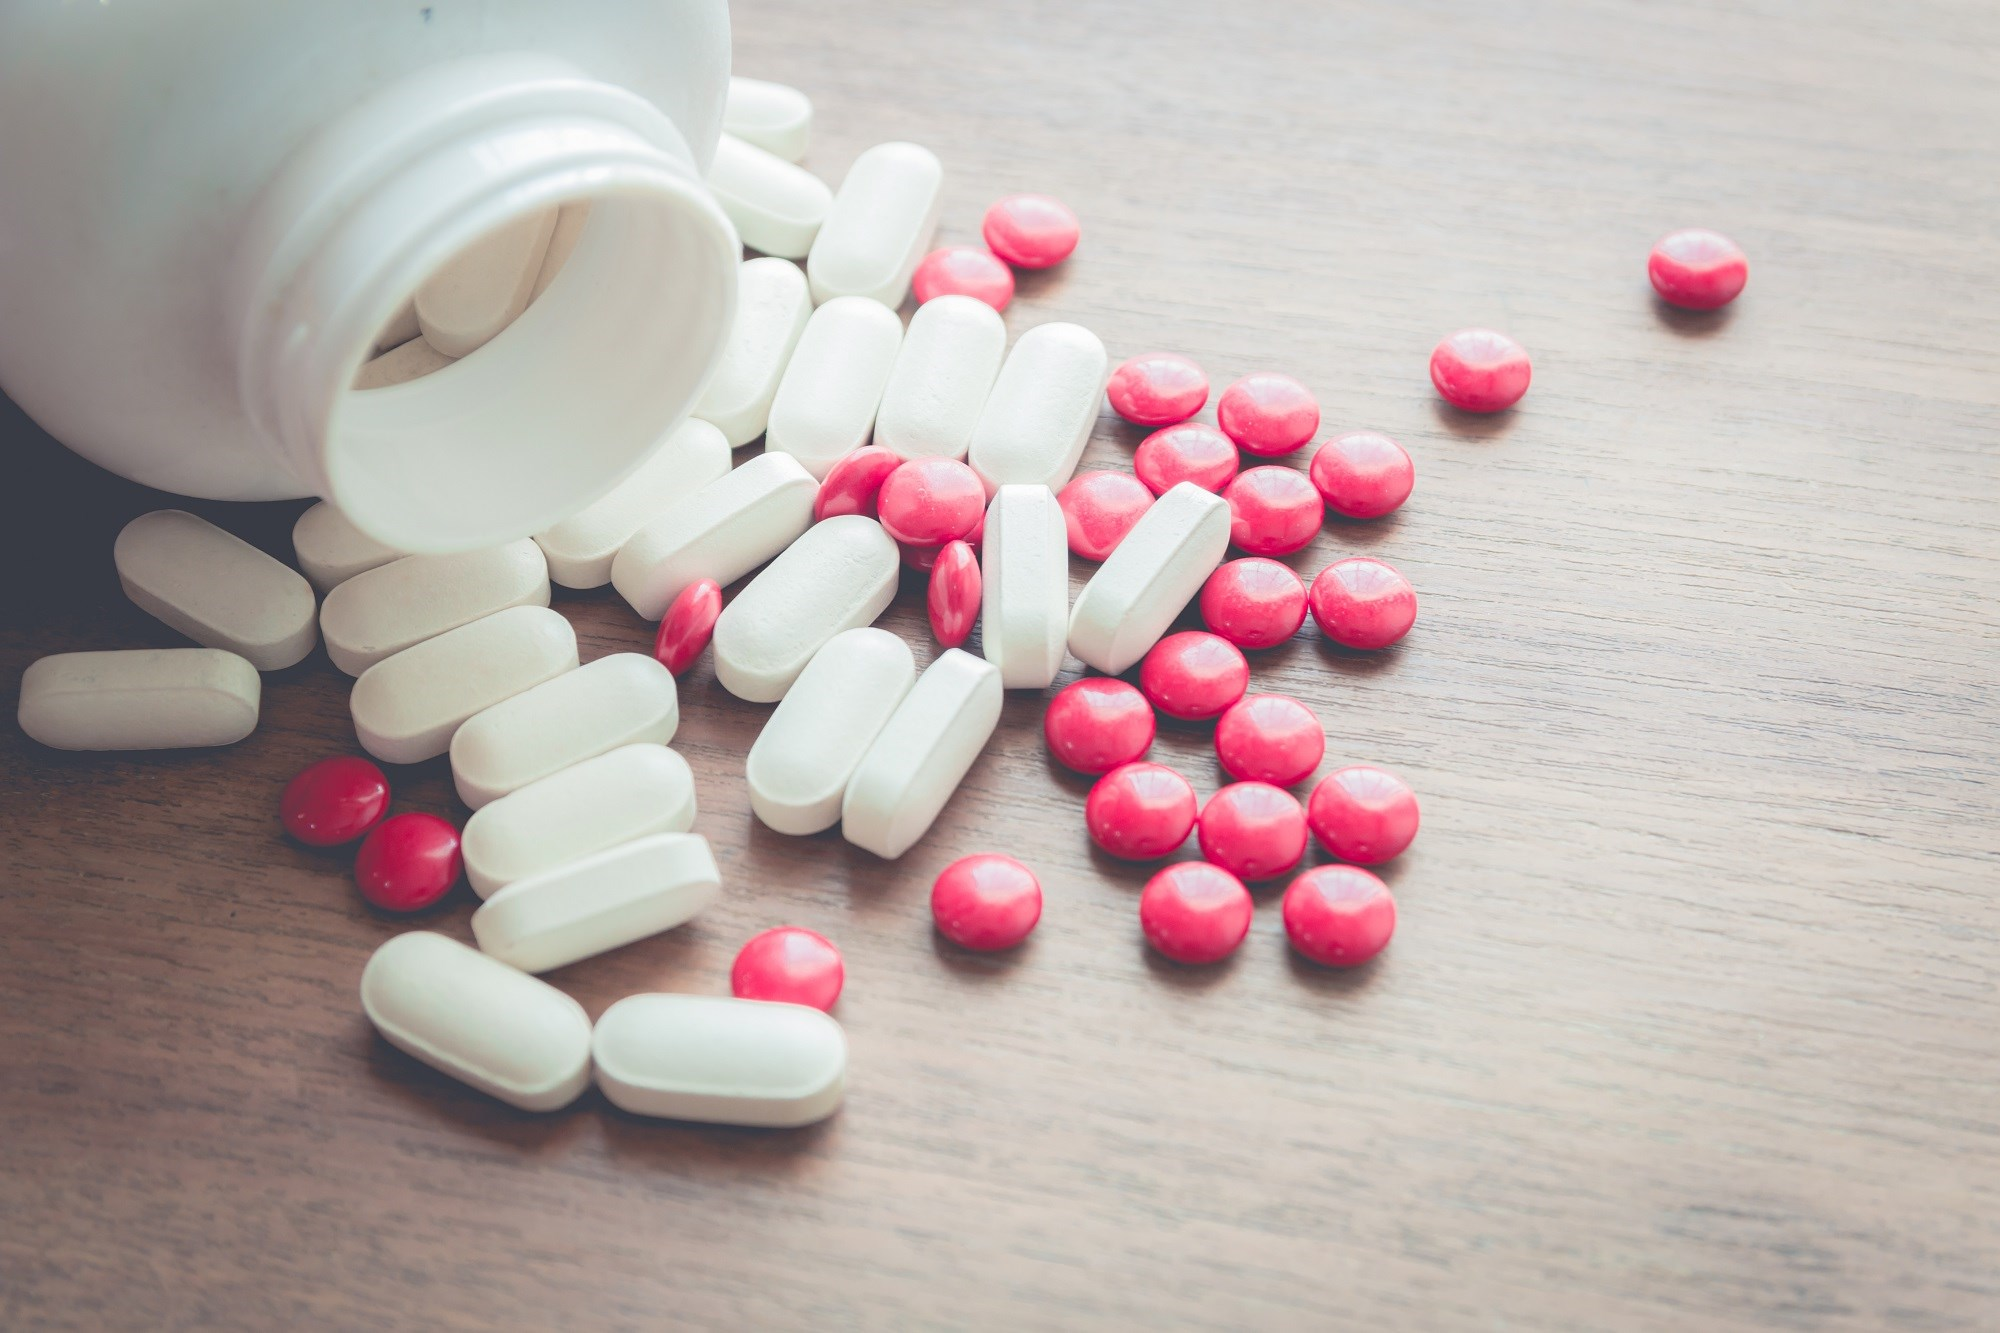 Proton Pump Inhibitor Use May Up CKD, ESRD